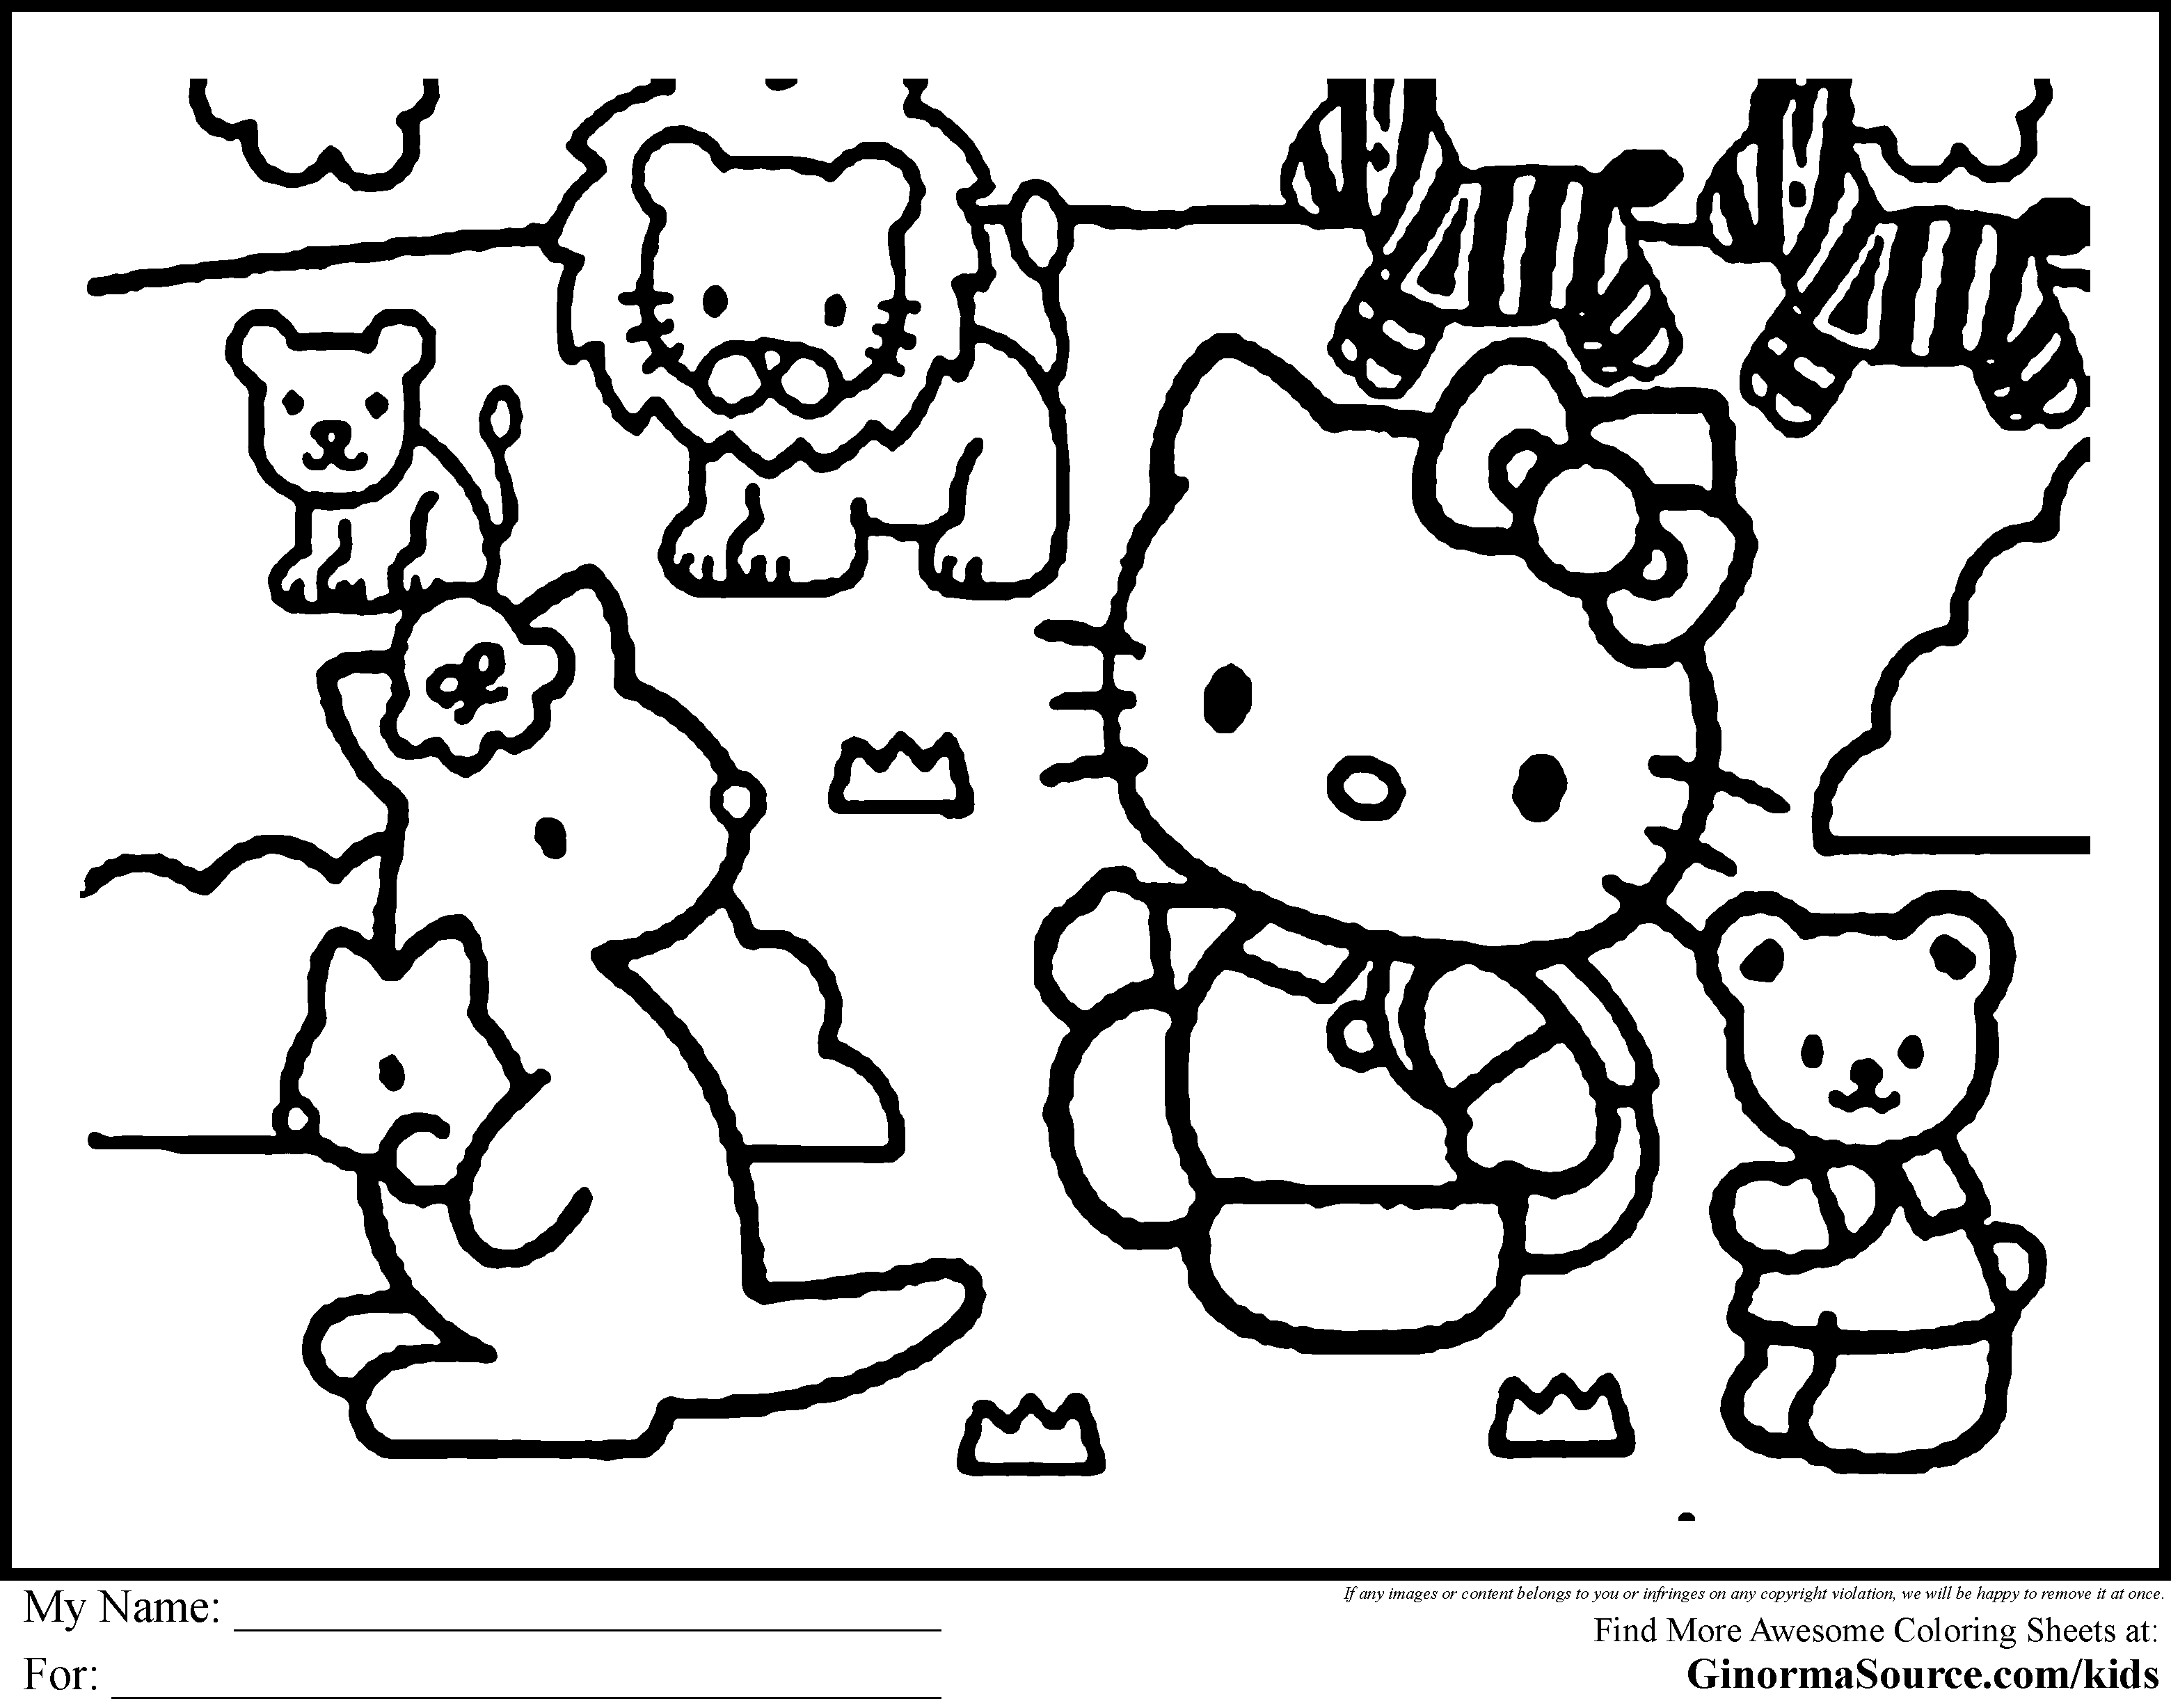 Coloring Pages Hello Kitty Zoo Gif 3120 2455 Hello Kitty Coloring Hello Kitty Colouring Pages Kitty Coloring